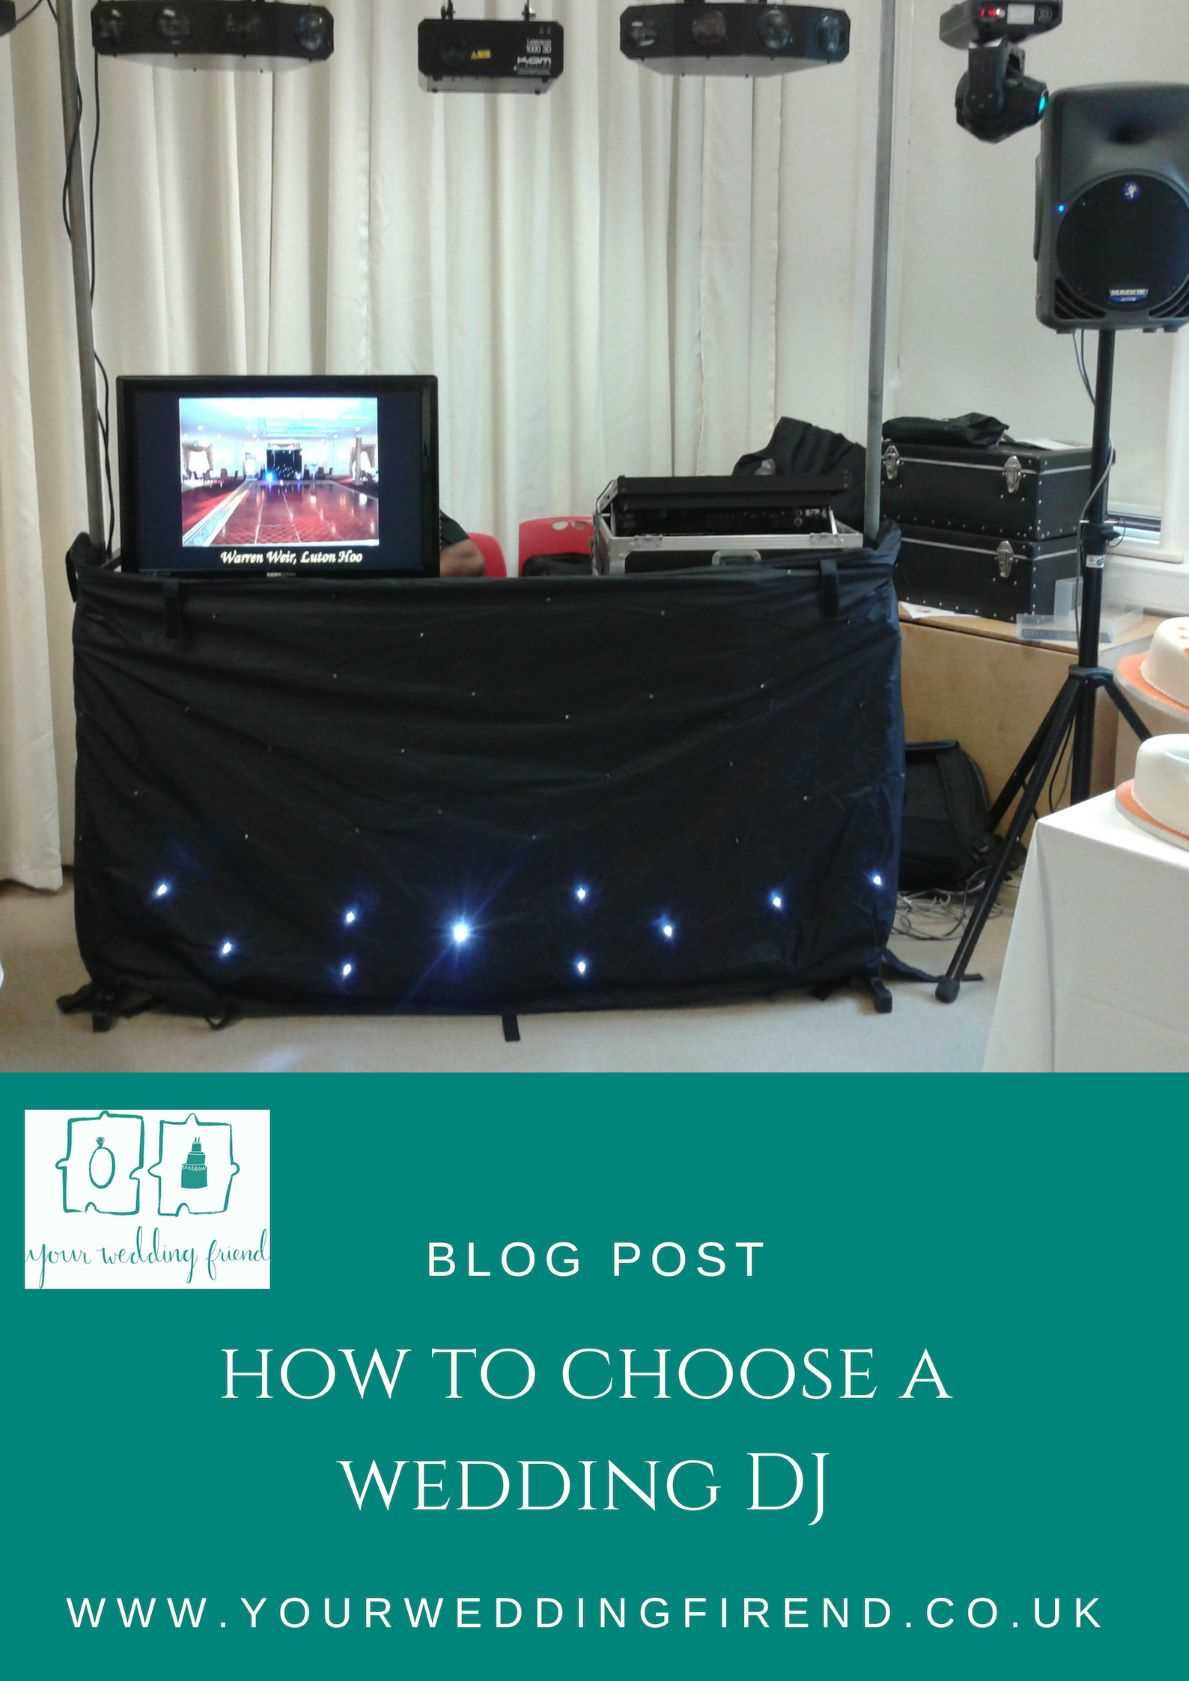 picture is of a dj booth with lights and speakers on stands and the title of the blog